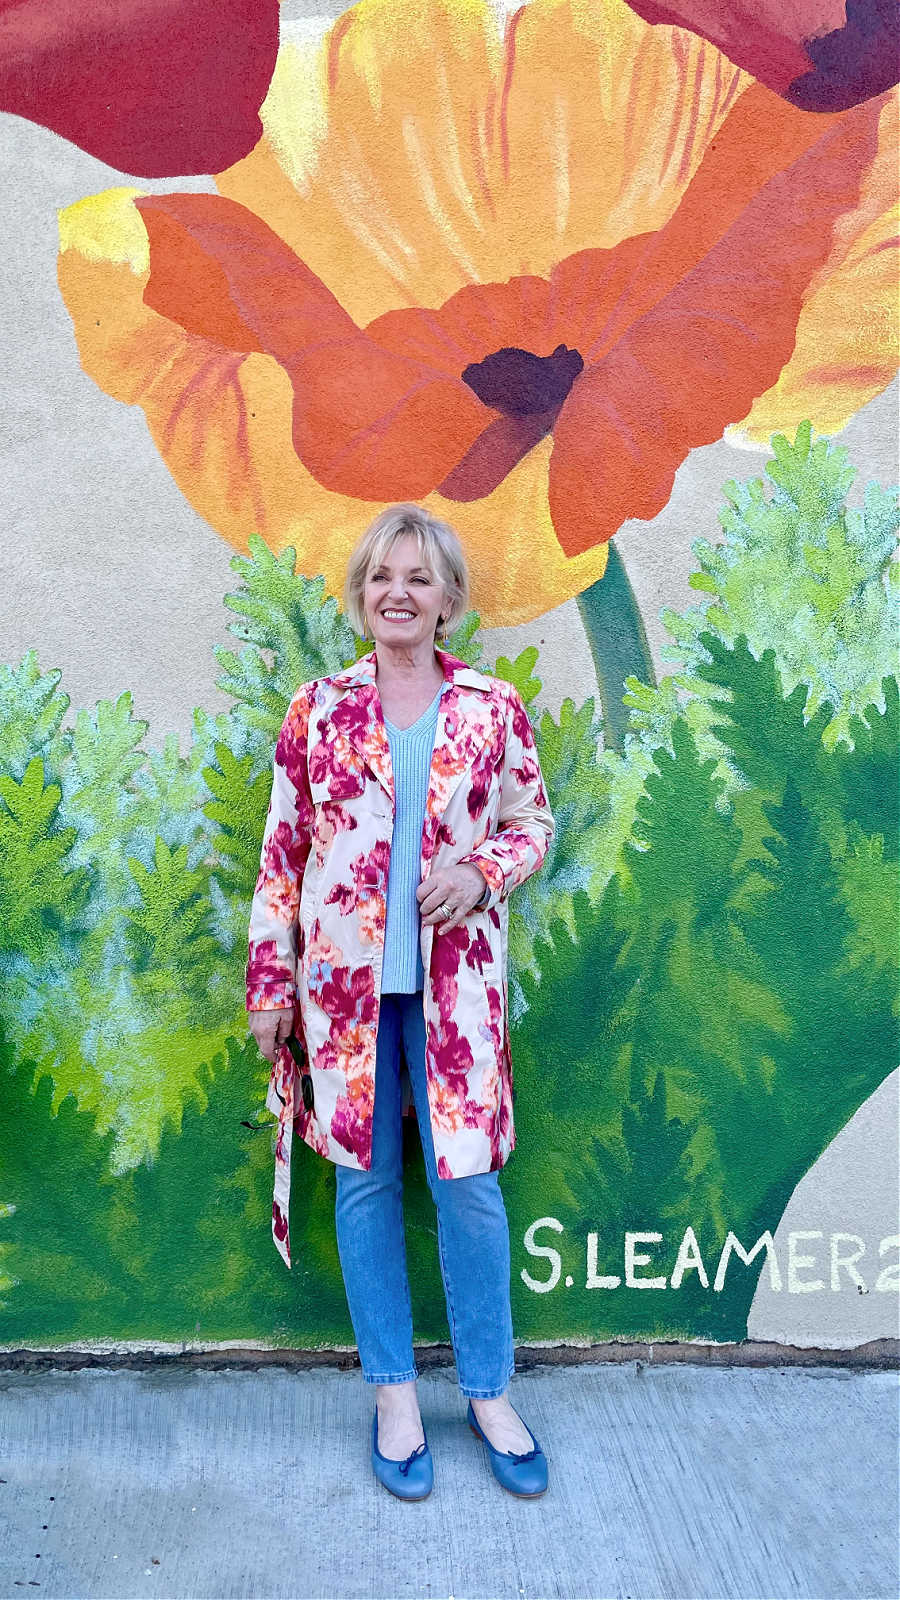 woman standing in front of floral mural wearing floral raincoat